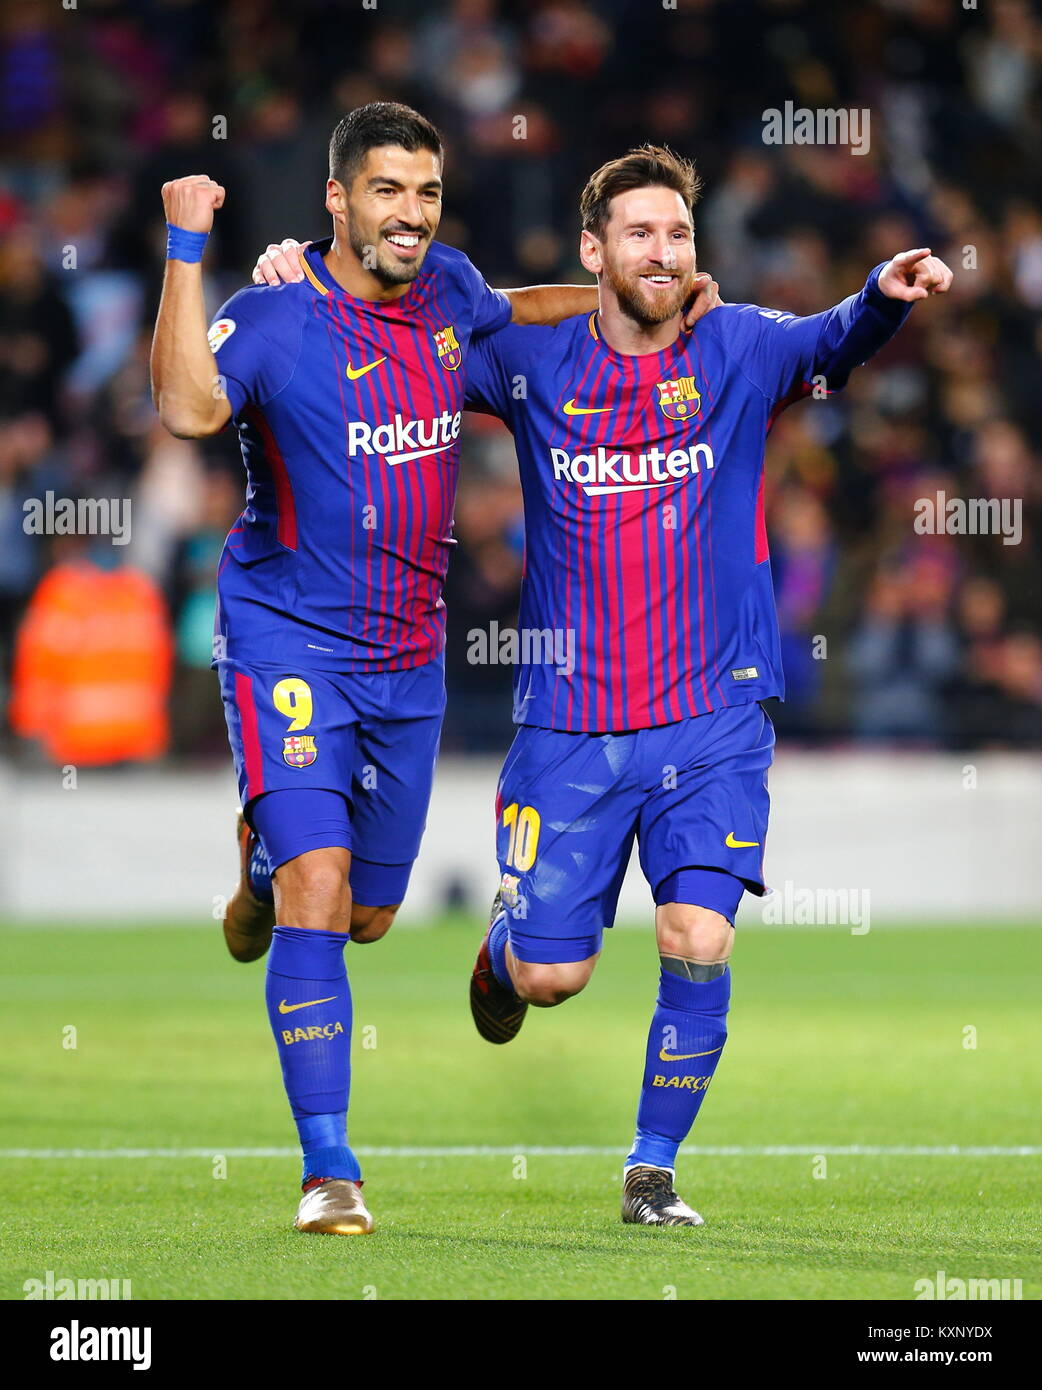 Messi And Suarez High Resolution Stock Photography And Images Alamy